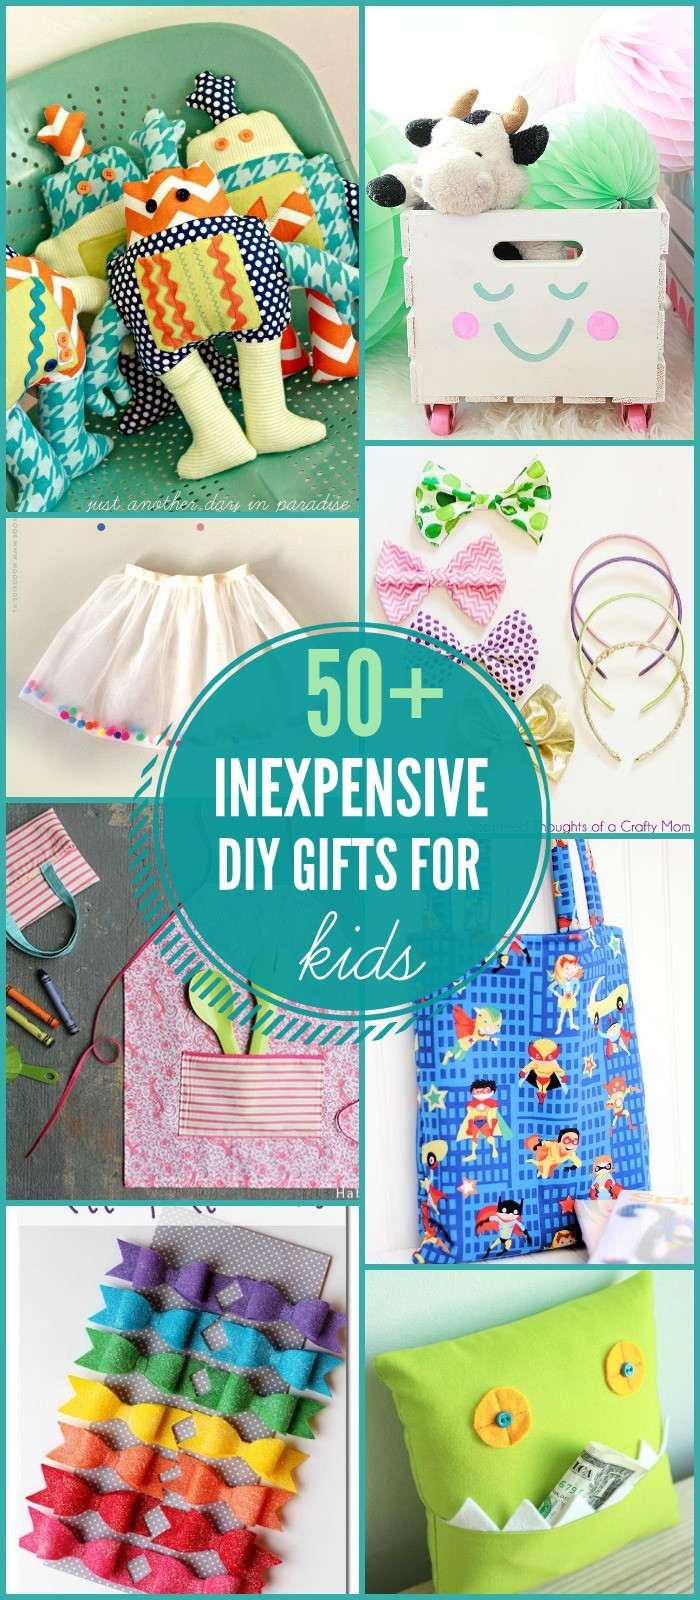 Best ideas about Holiday Gift Ideas For Kids . Save or Pin DIY Gifts for Kids Now.